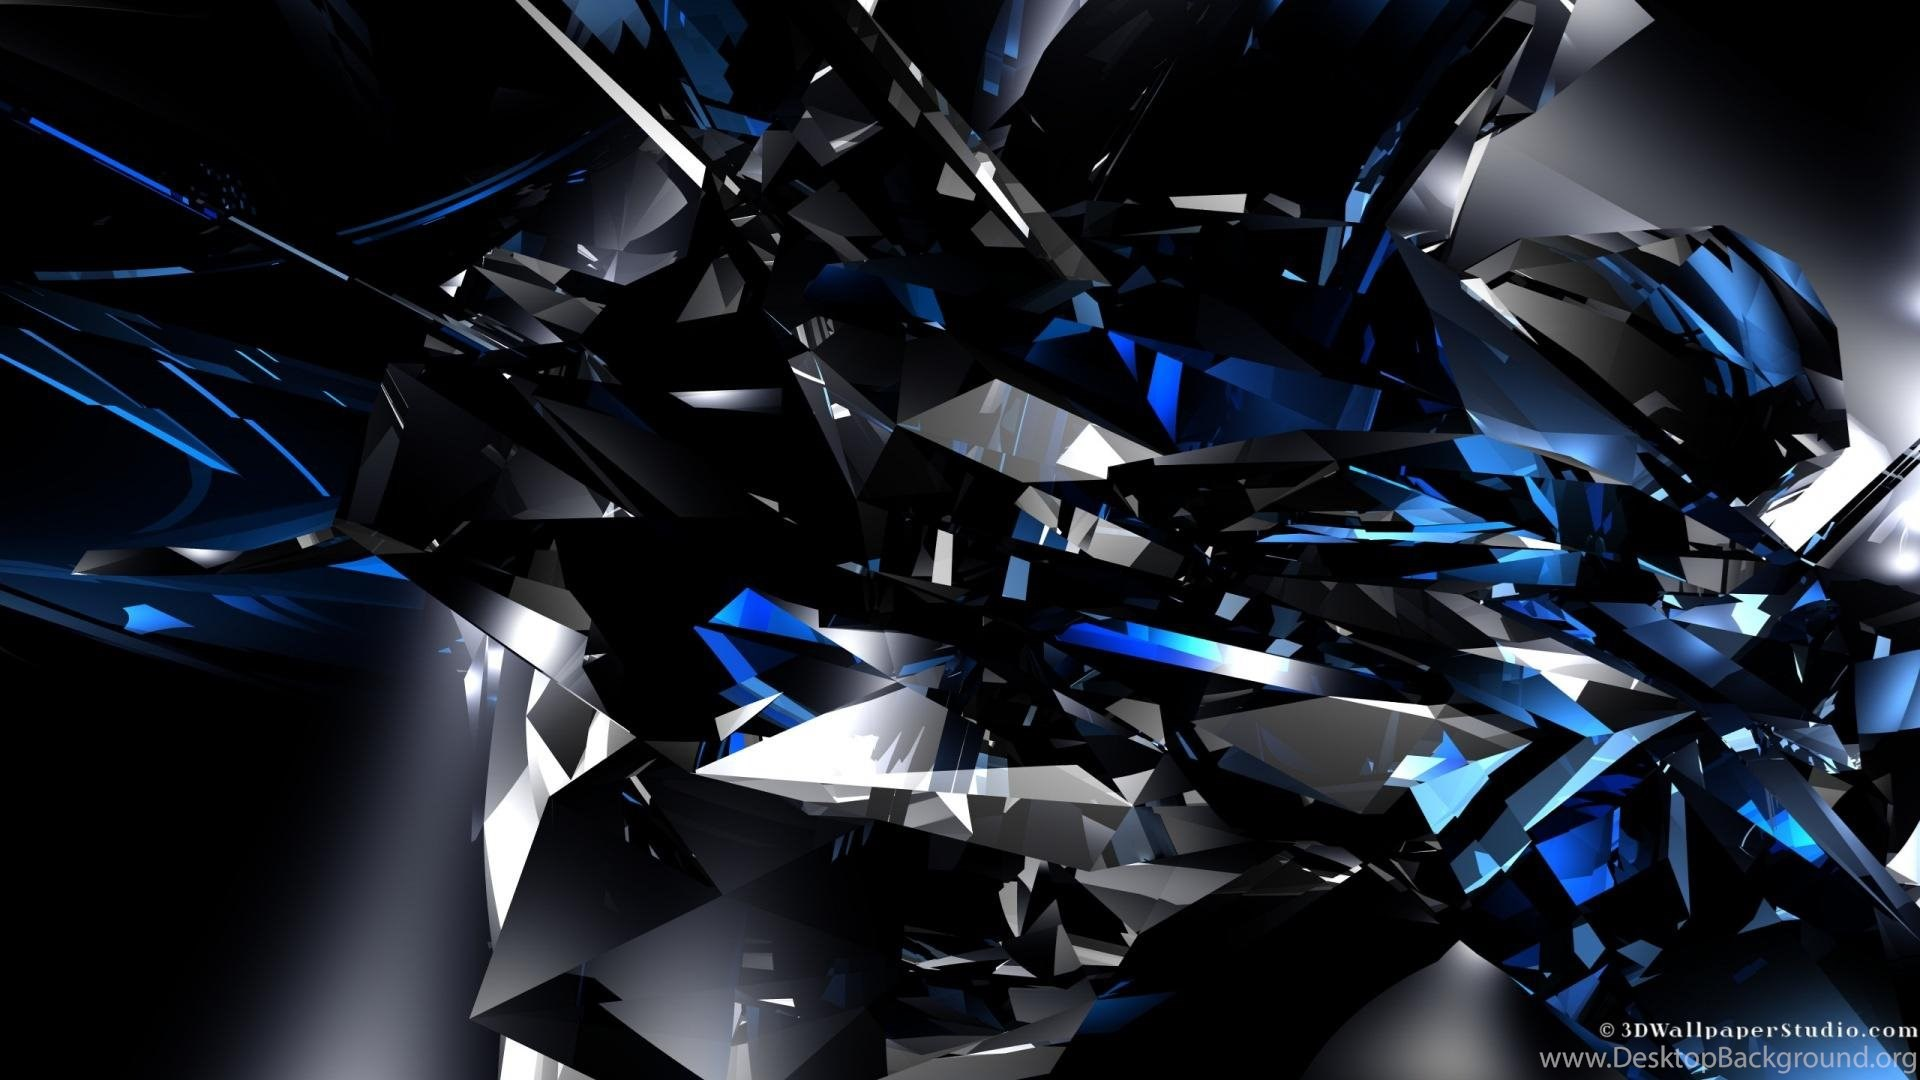 Dark Blue Wallpapers 1920 1080 Crystal Wallpapers Blue Color Hd